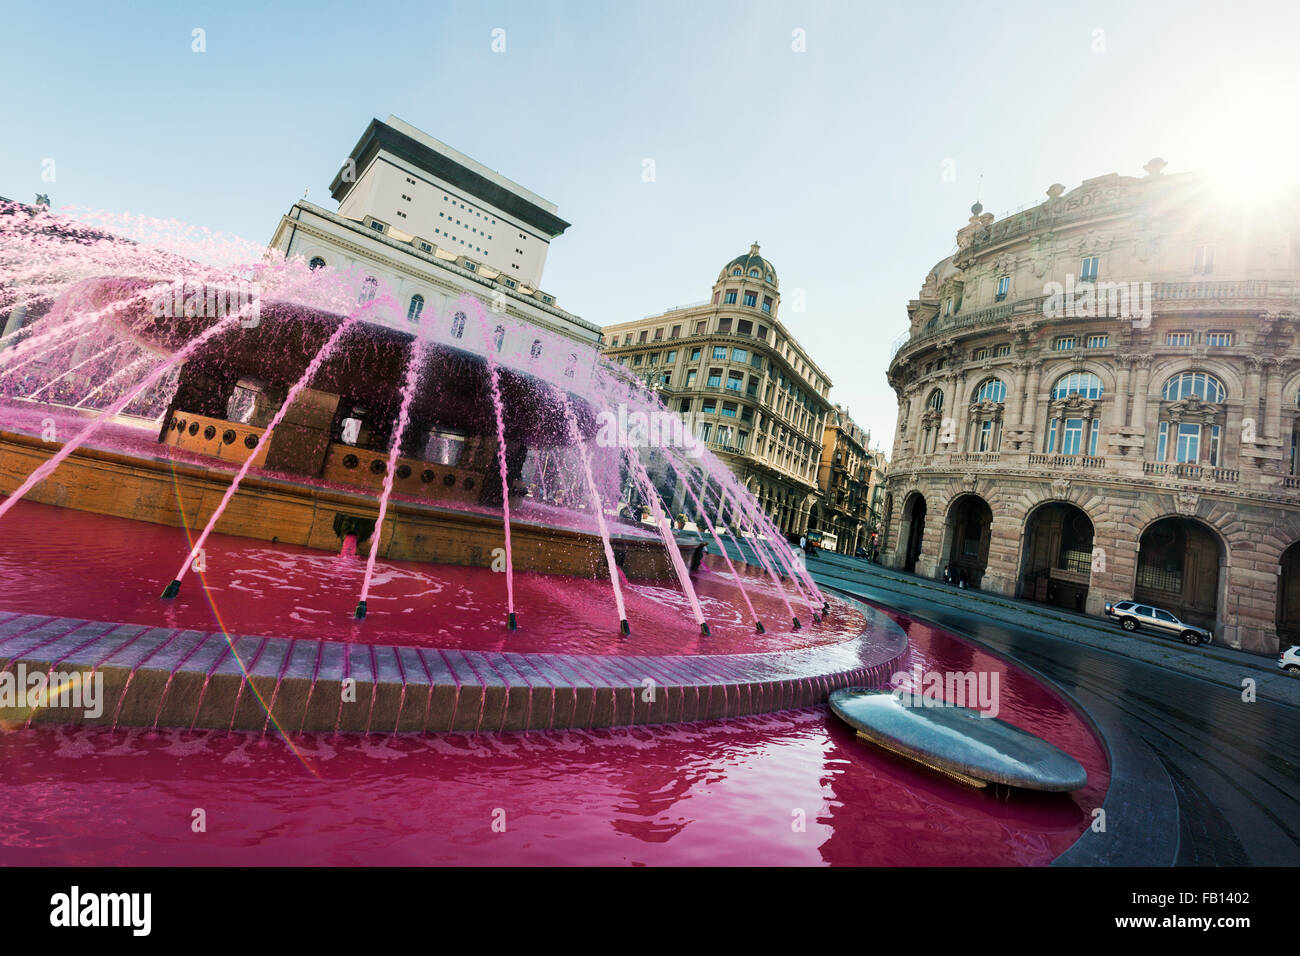 Pink Fountain in Piazza de Genoa on sunny day - Stock Image